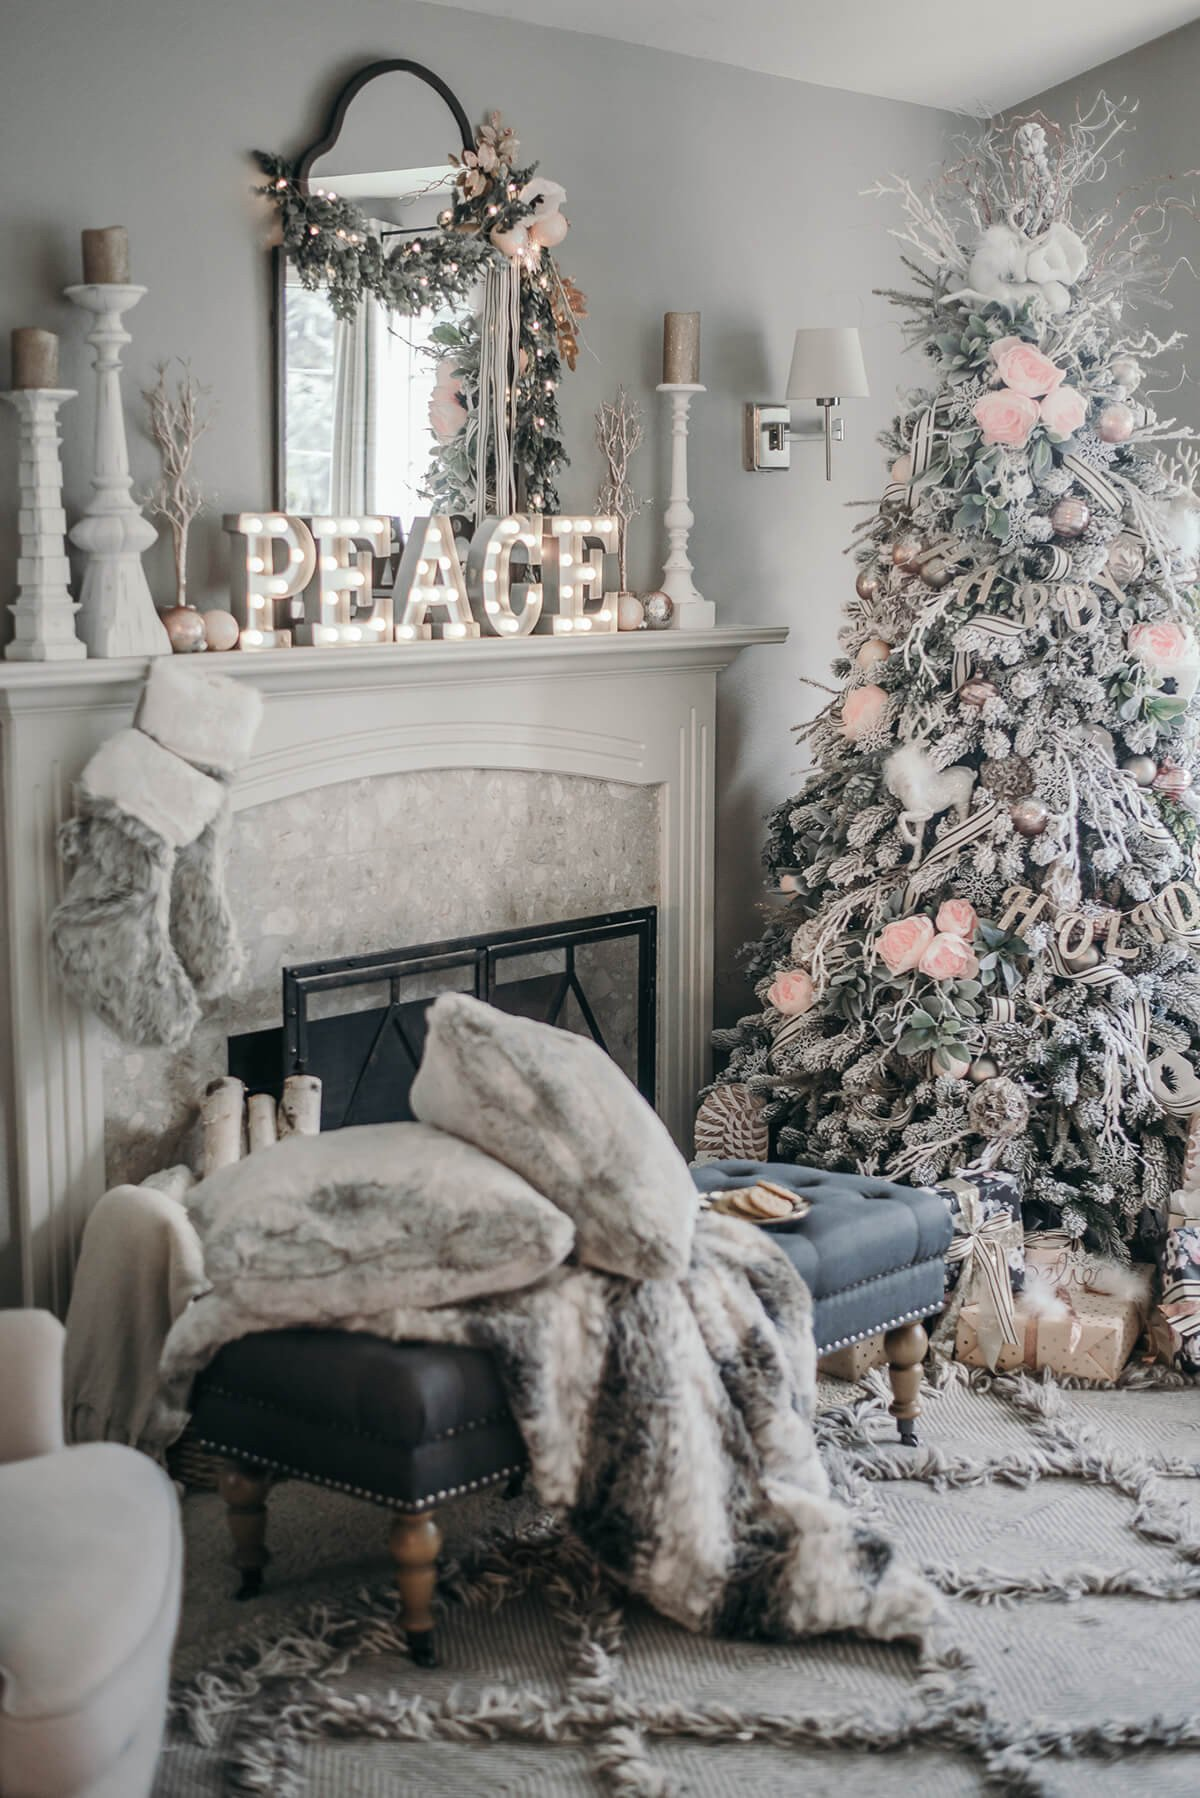 Modern Living Room Decorating Ideas Christmas 32 Best Christmas Living Room Decor Ideas and Designs for 2019